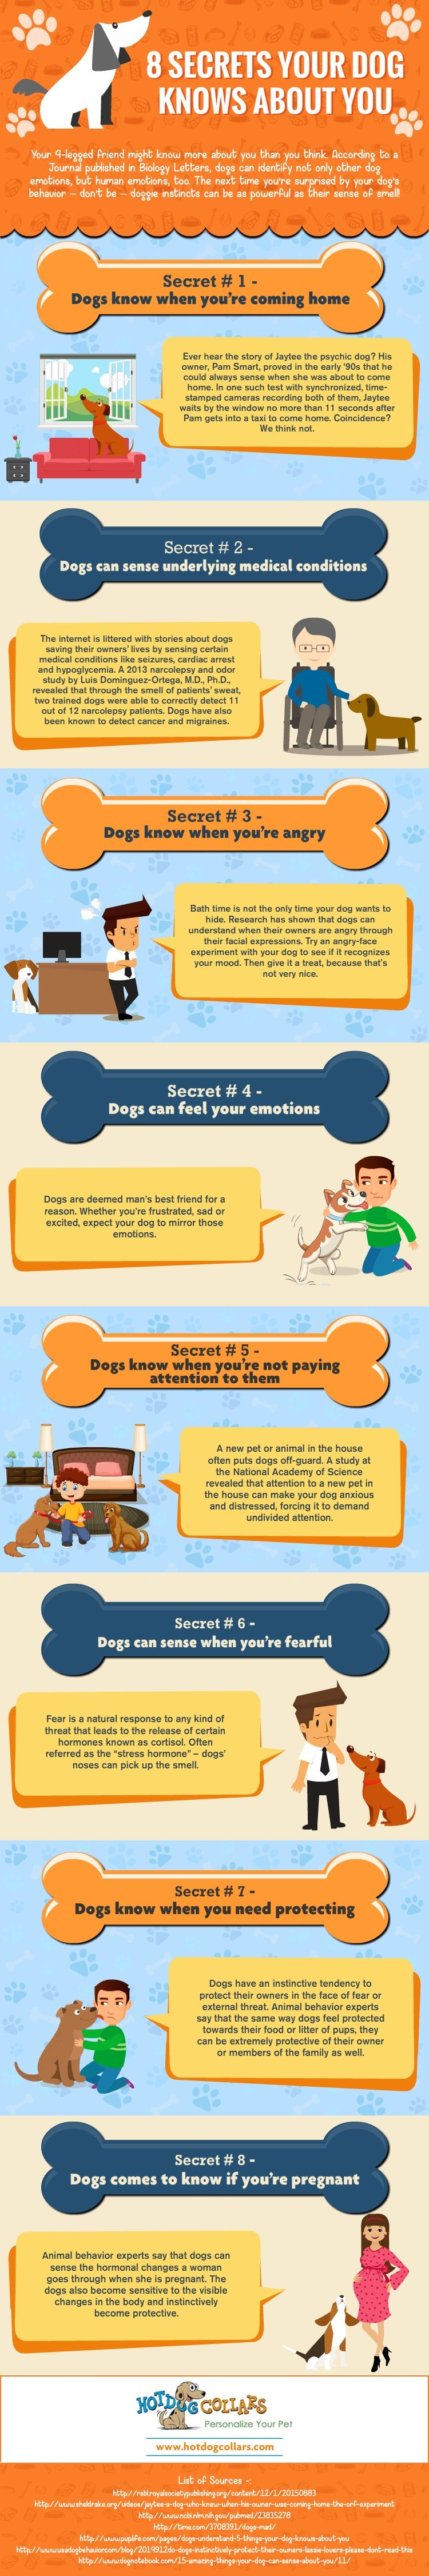 8 Secrets Your Dog Knows About You